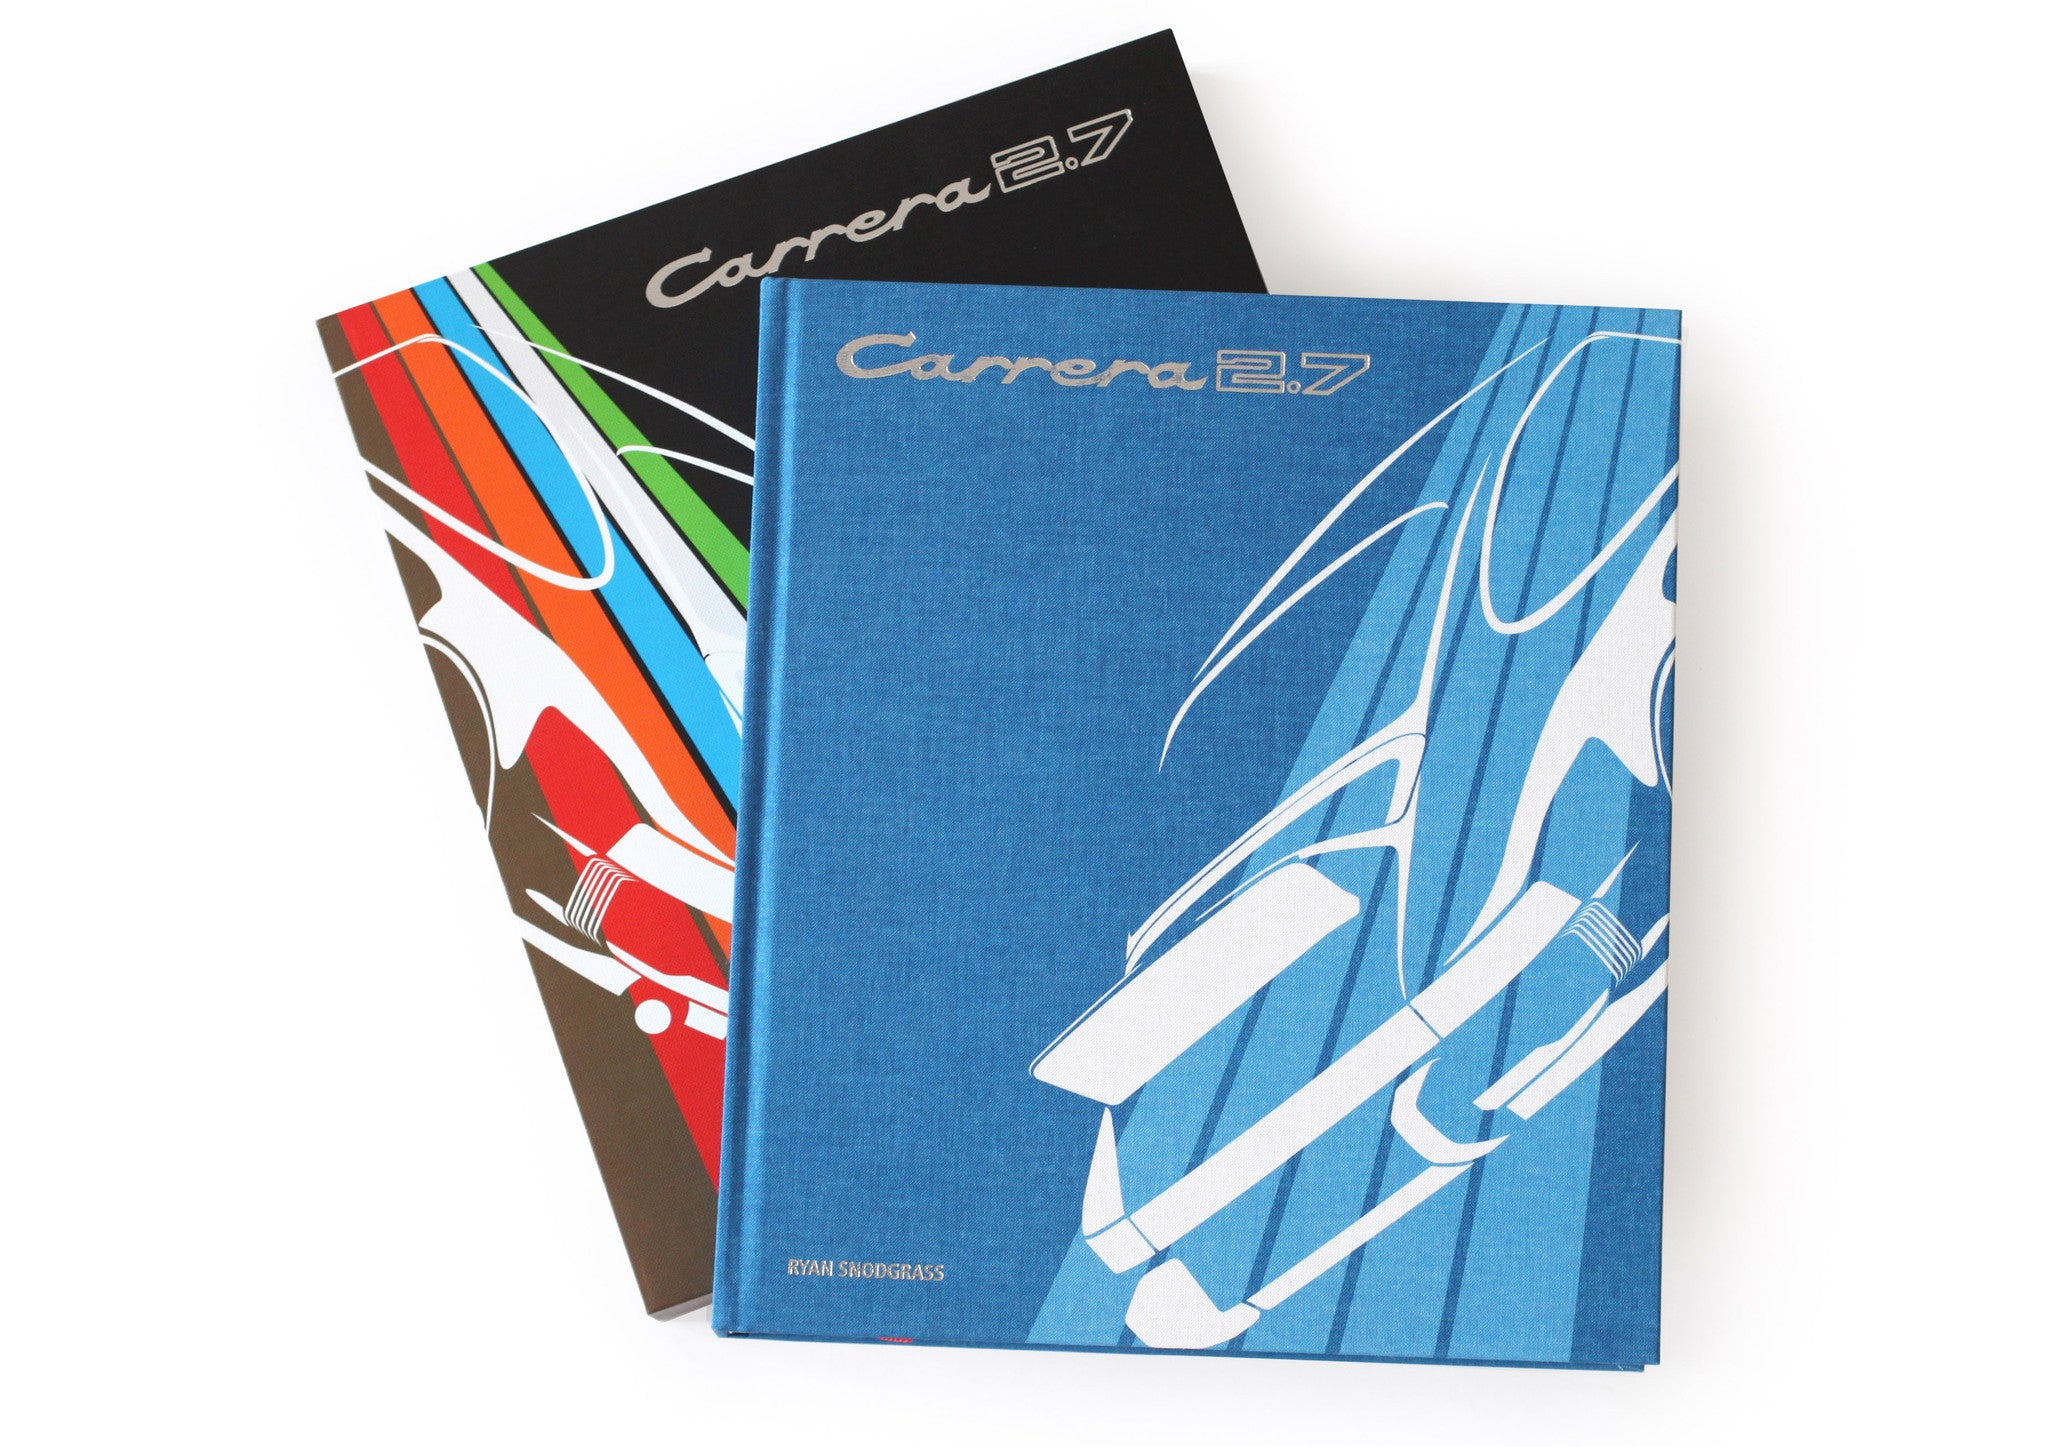 Carrera 2.7 (Limited Edition) Book